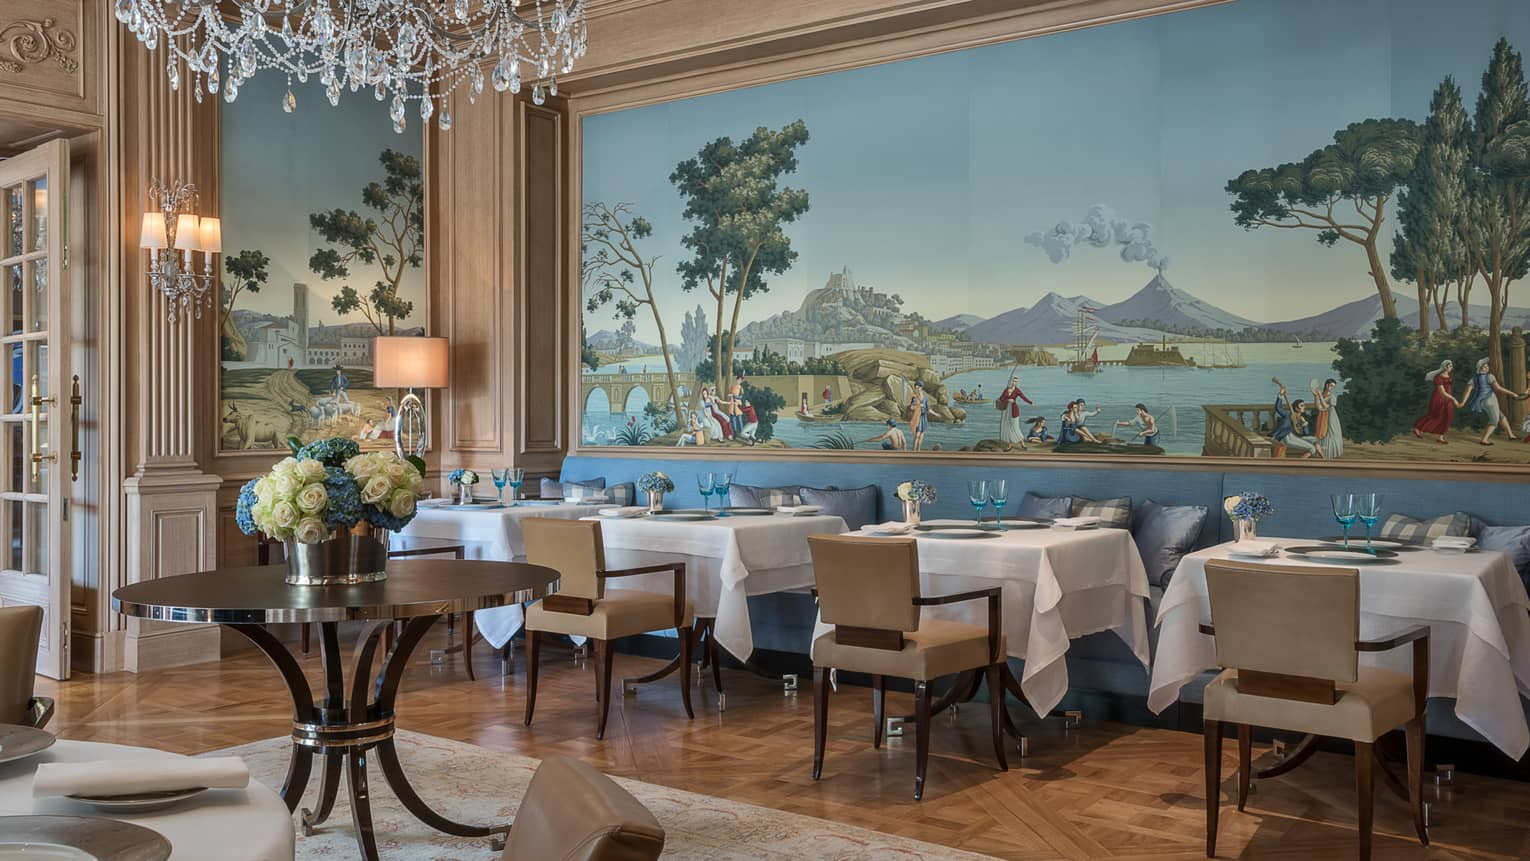 Il Lago elegant Northern Italian dining room with wall-sized mural above tables, chairs, crystal chandelier